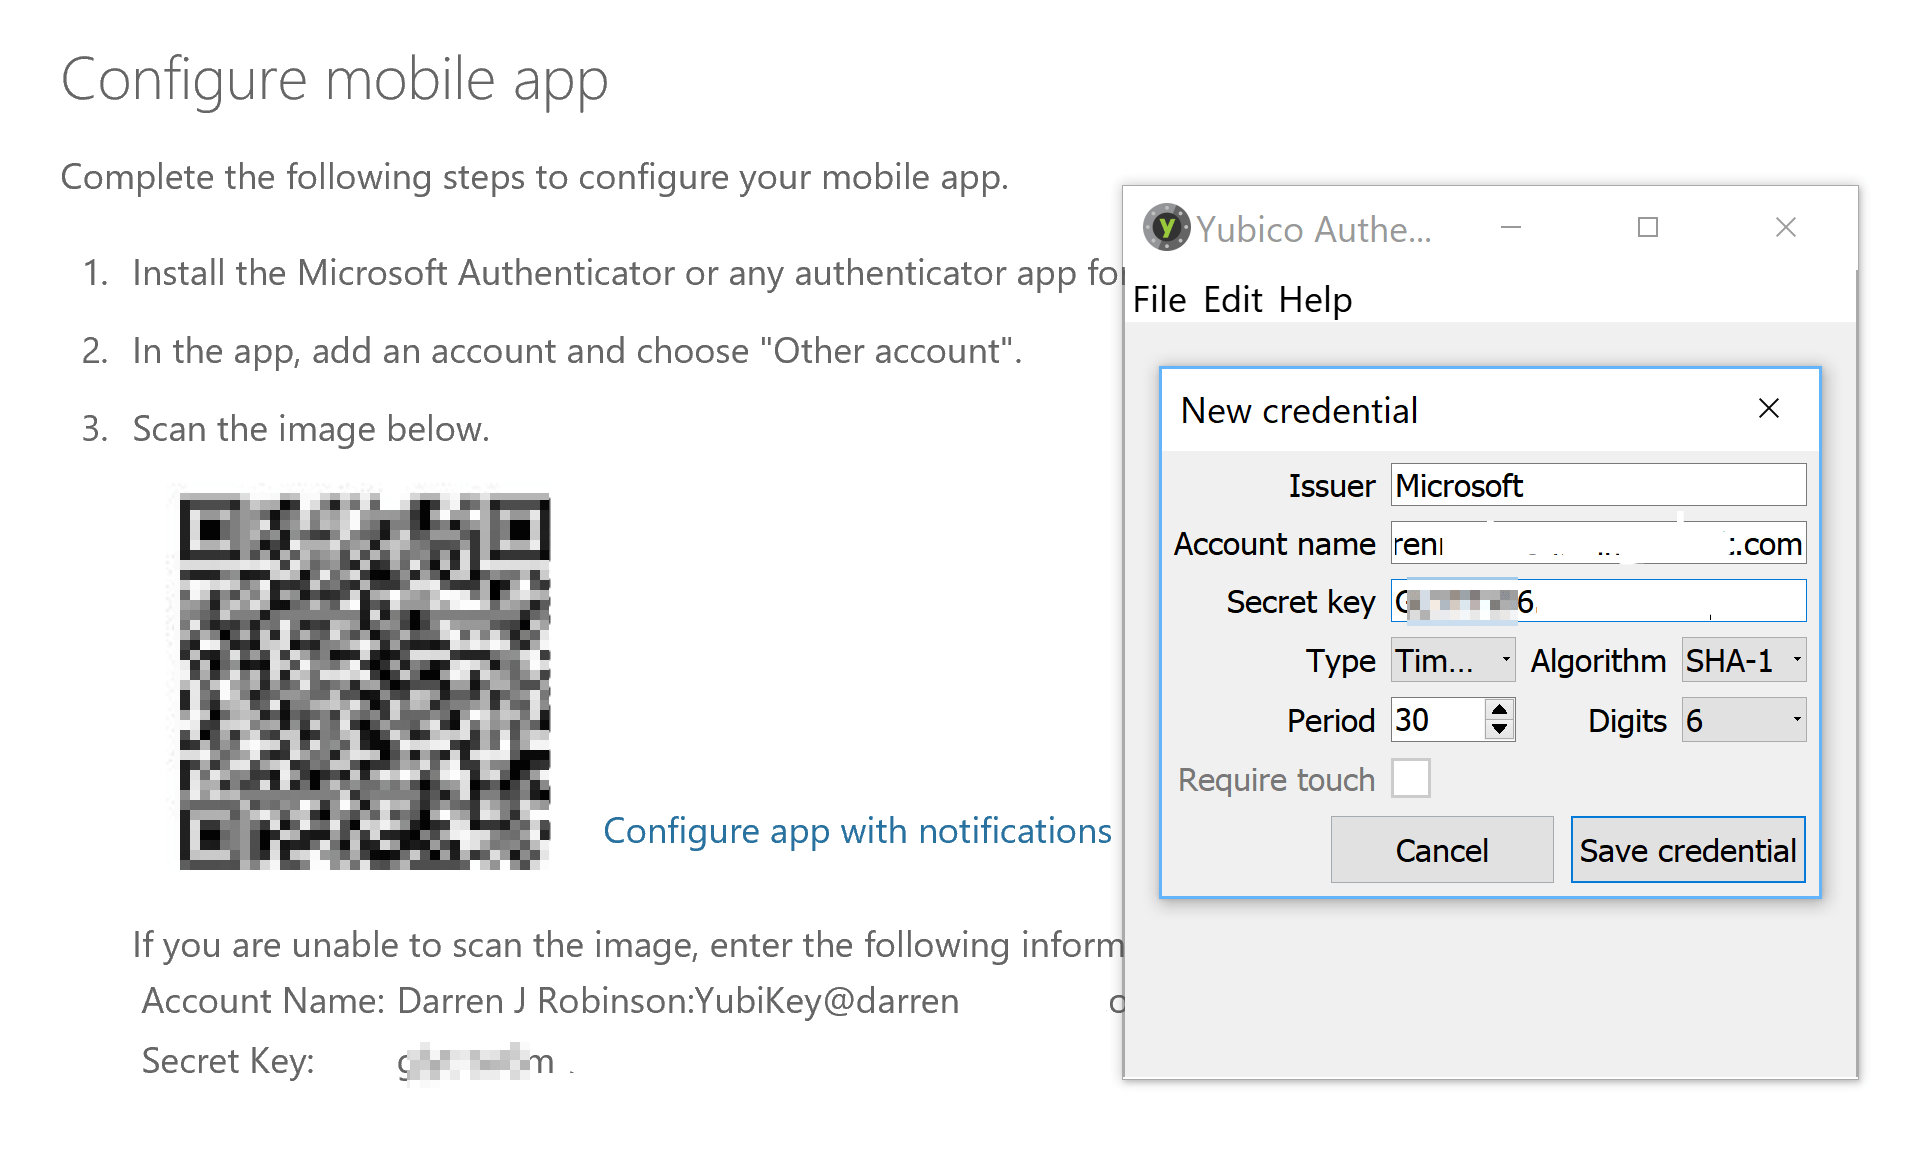 Enrolling and using both Microsoft Authenticator and a